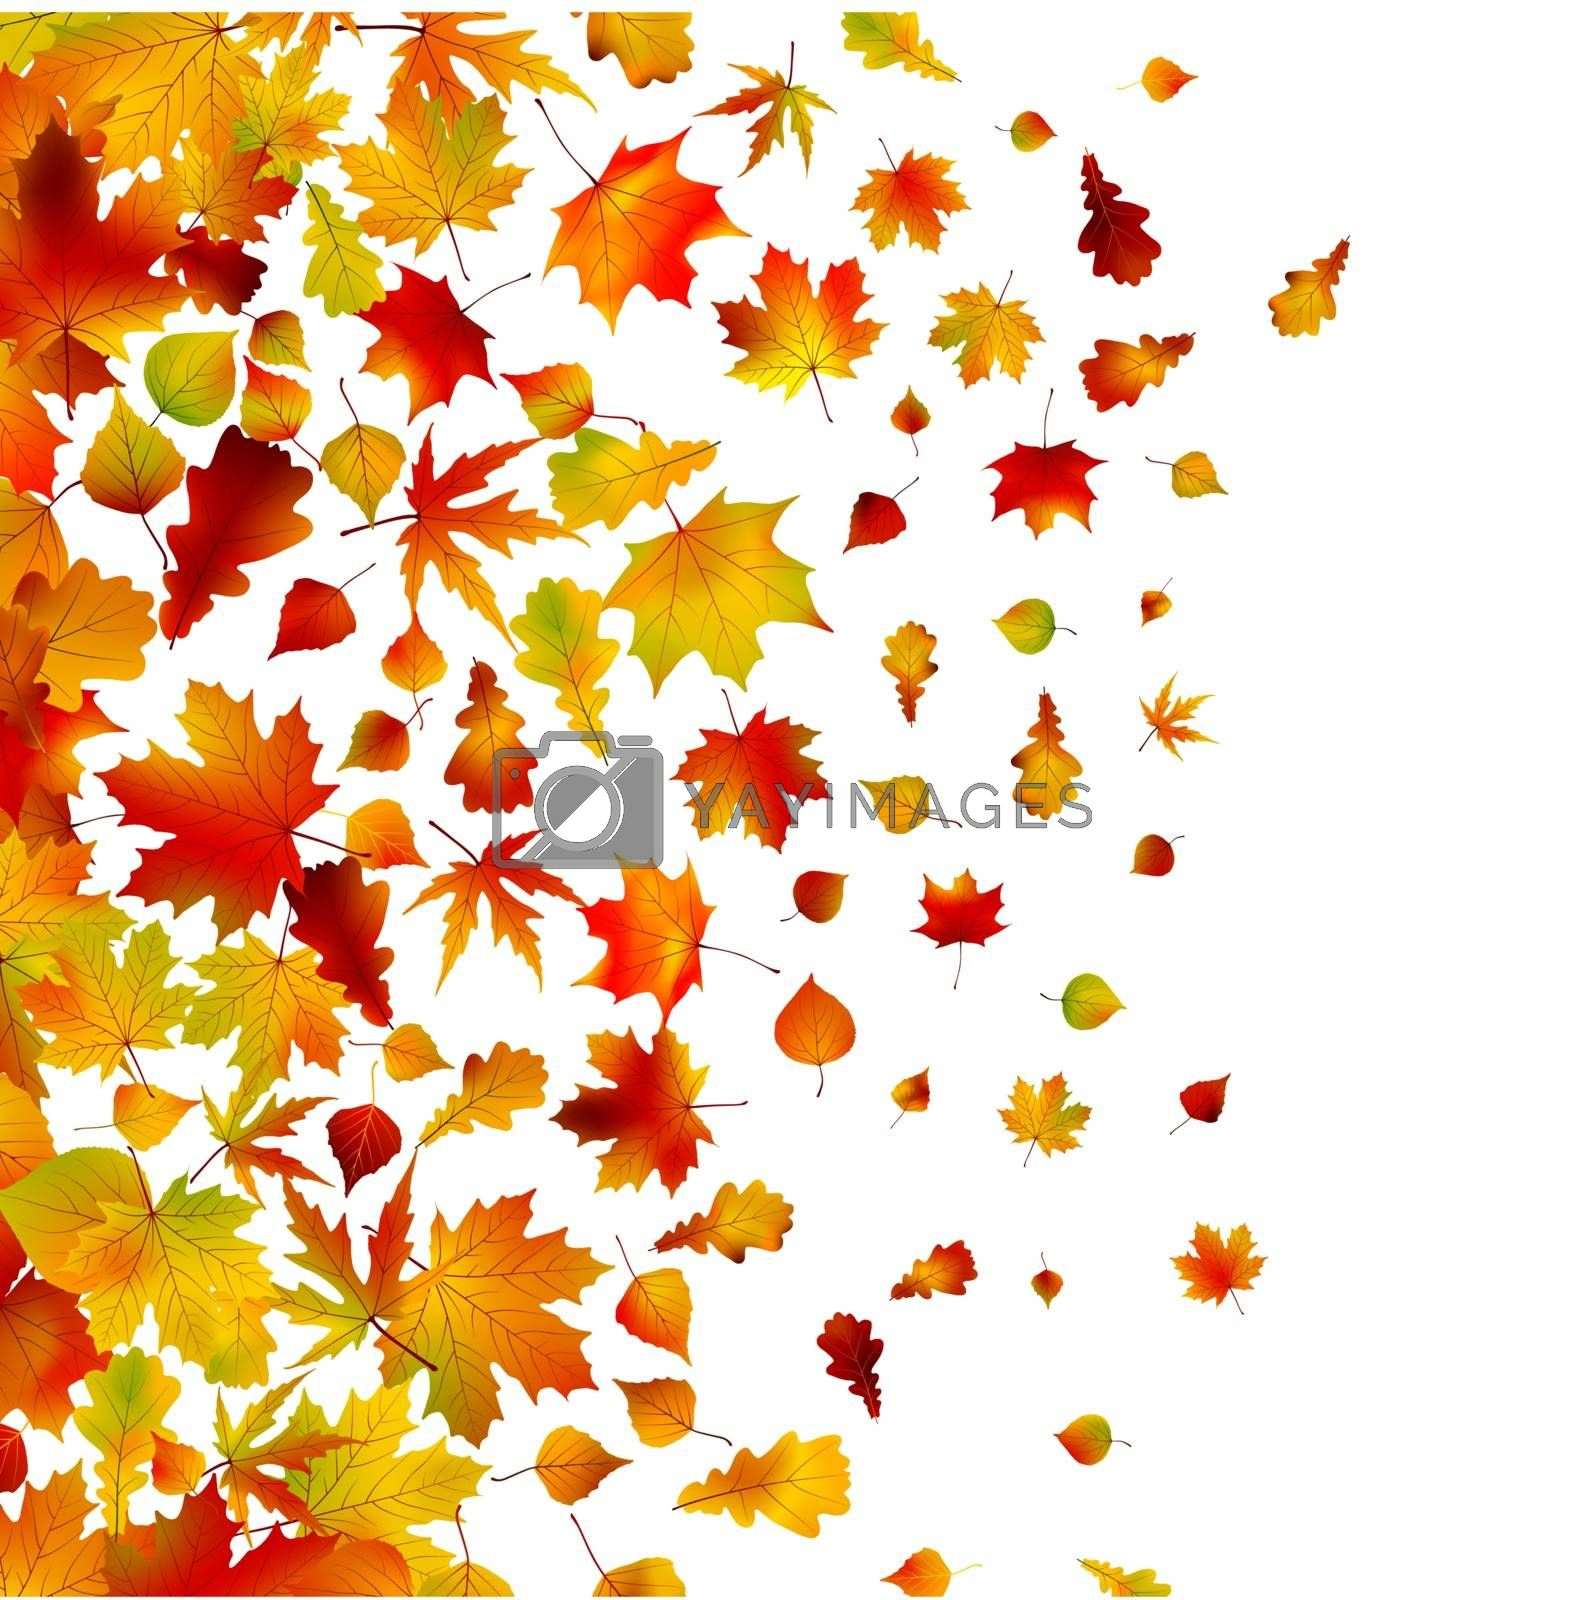 Autumn leaves, background. EPS 8 by Petrov_Vladimir